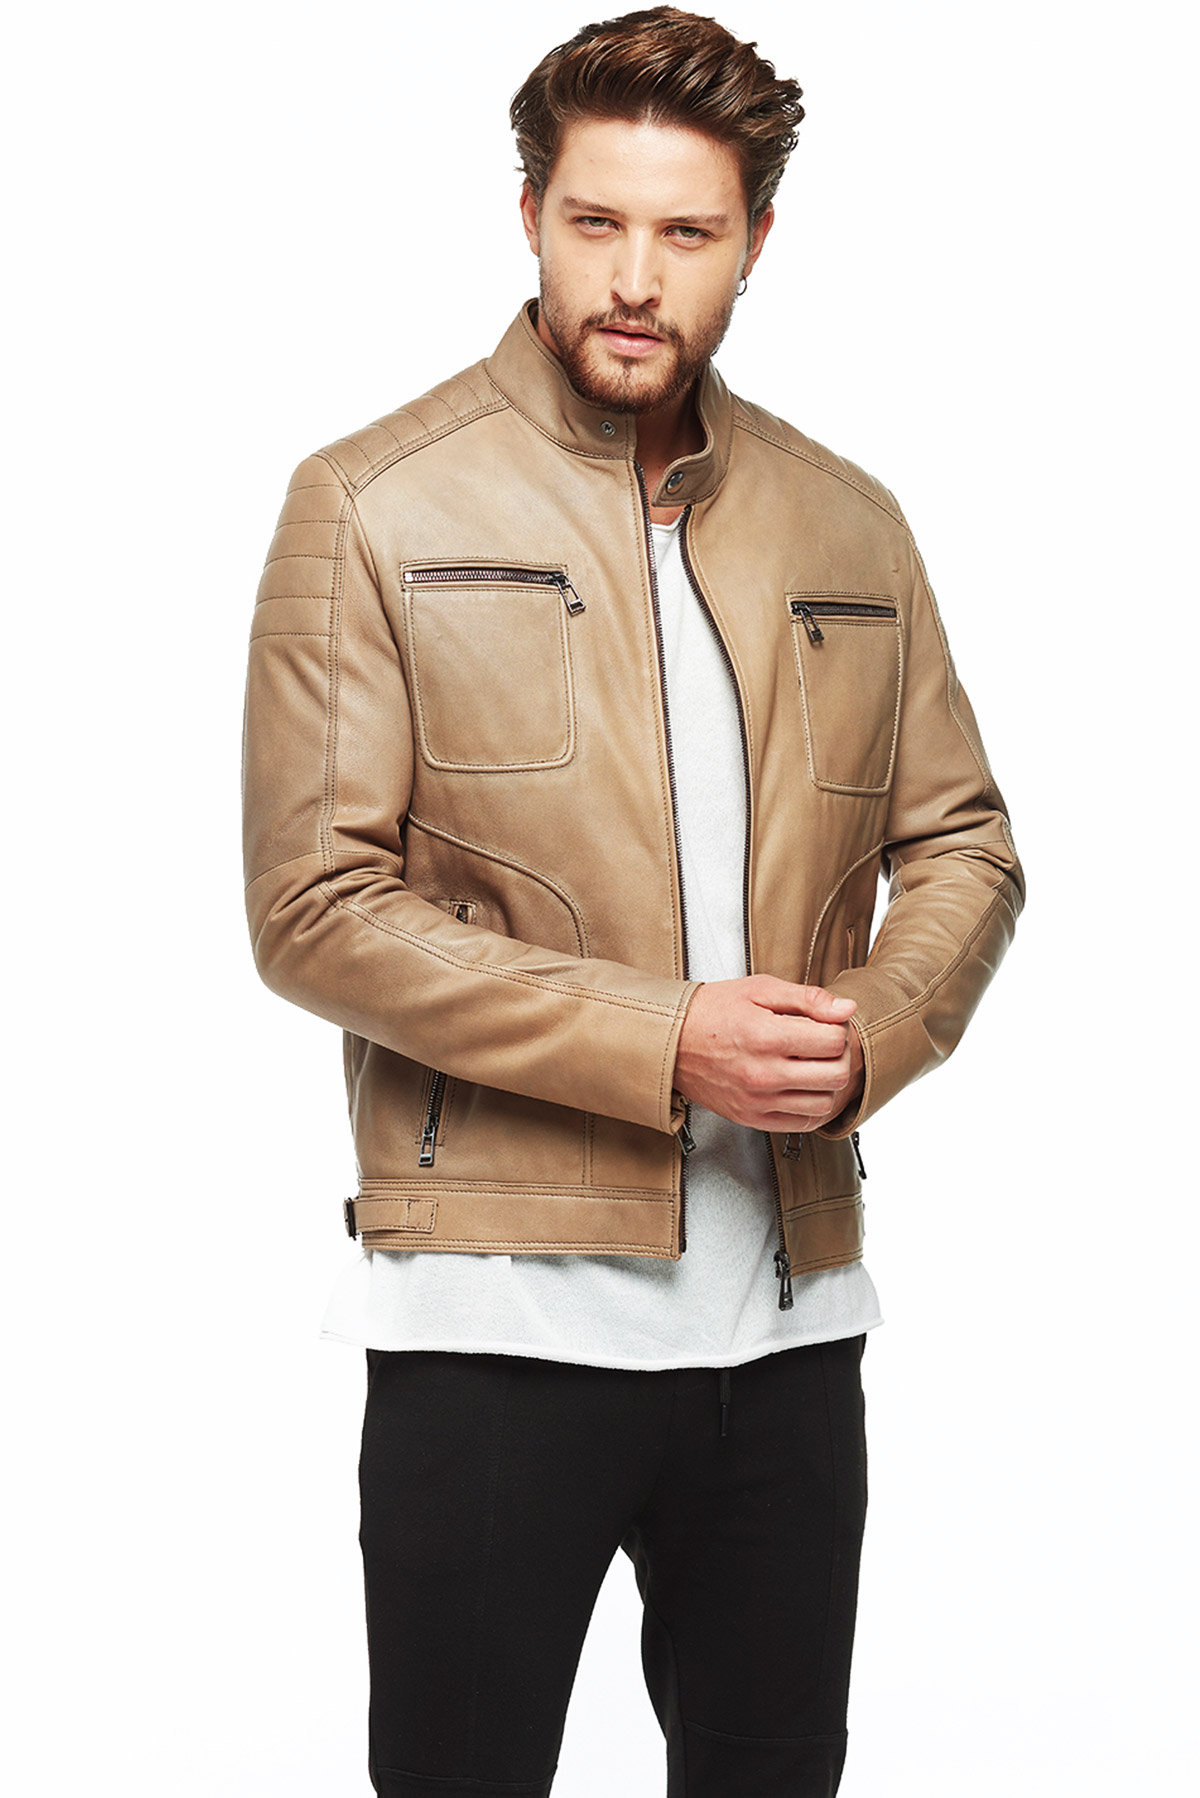 cool leather jackets mens